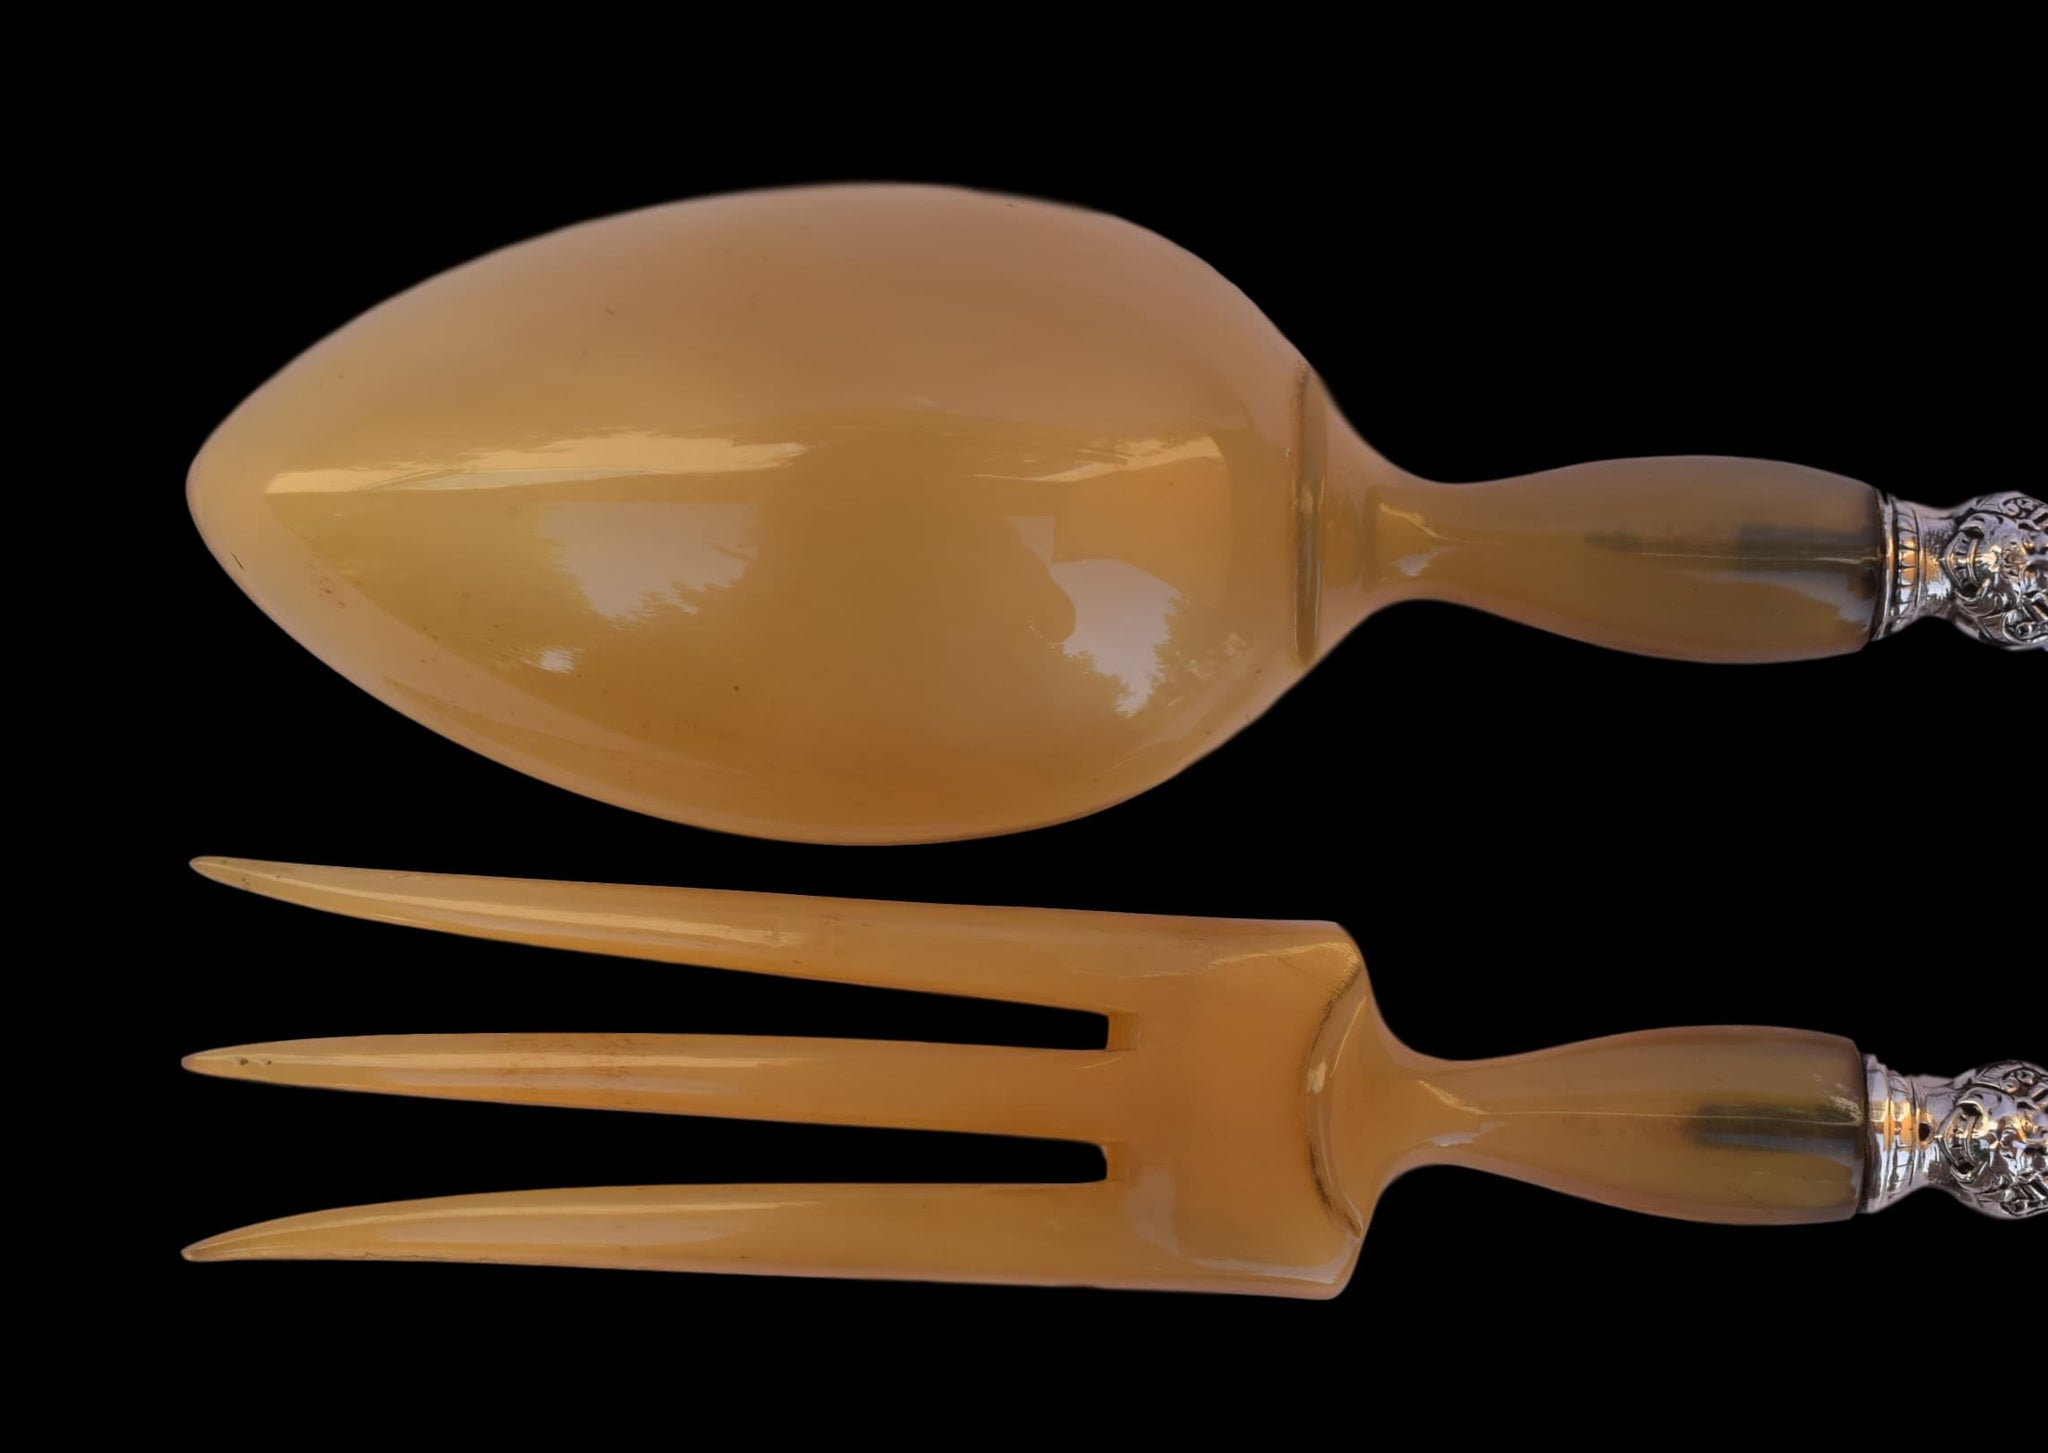 Renaissance Salad Serving Implement - Charmantiques